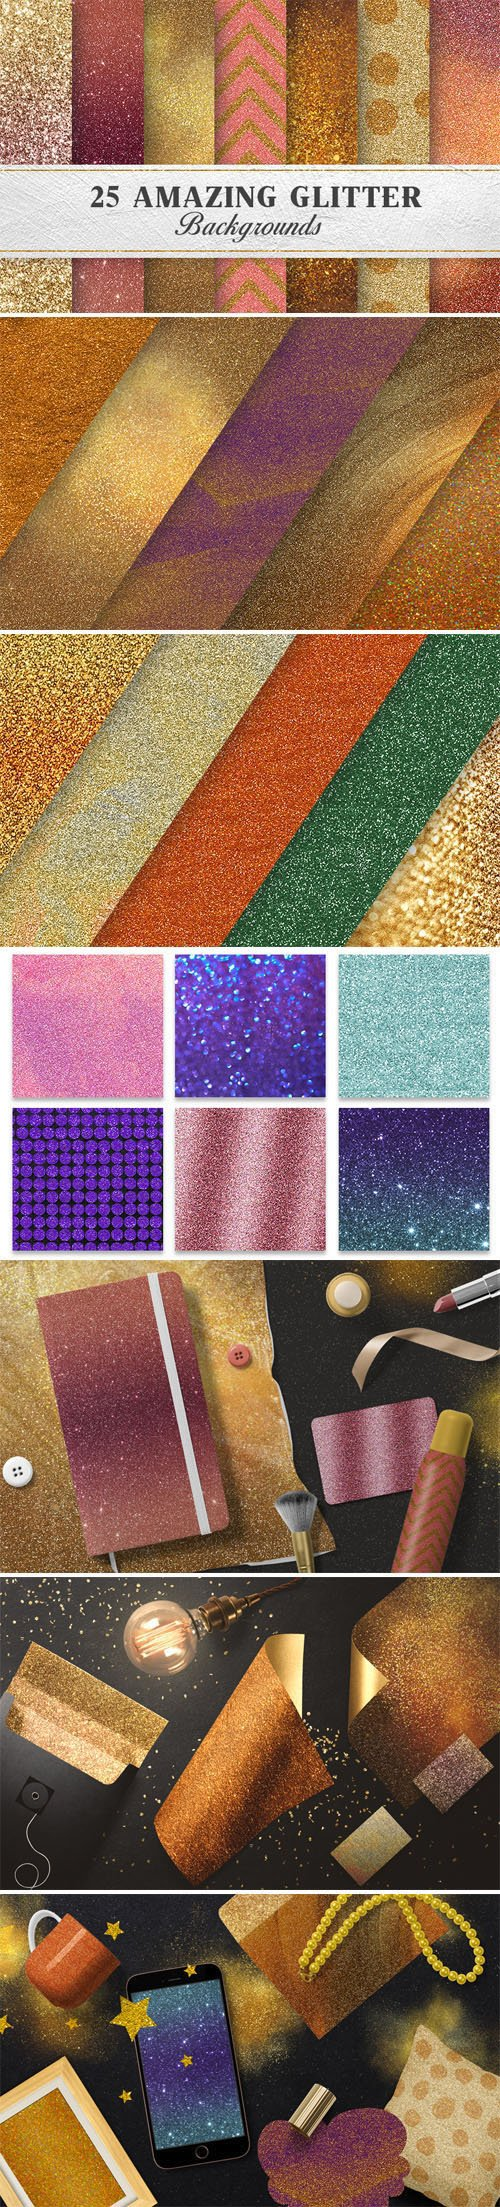 25 Amazing Glitter Backgrounds Collection